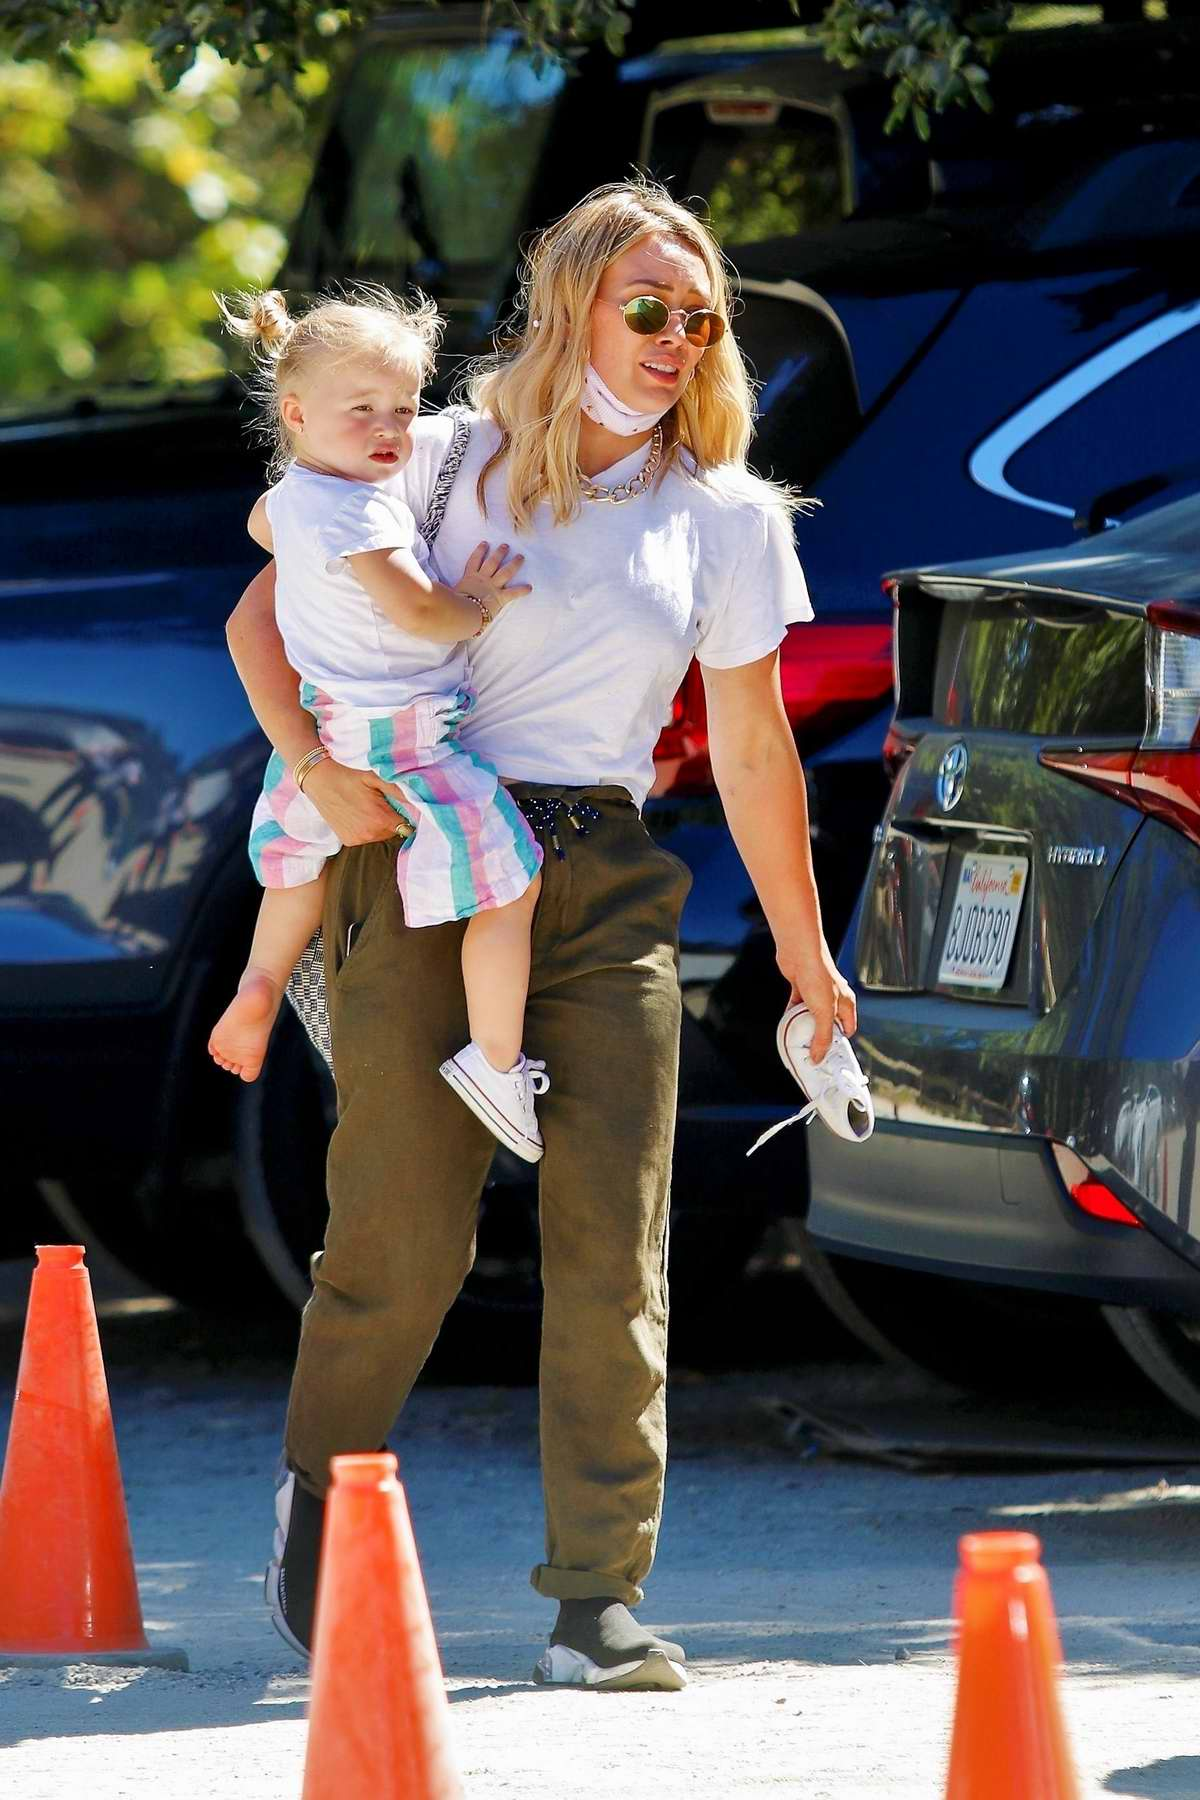 Hilary Duff seen carrying her daughter while out in in Los Angeles